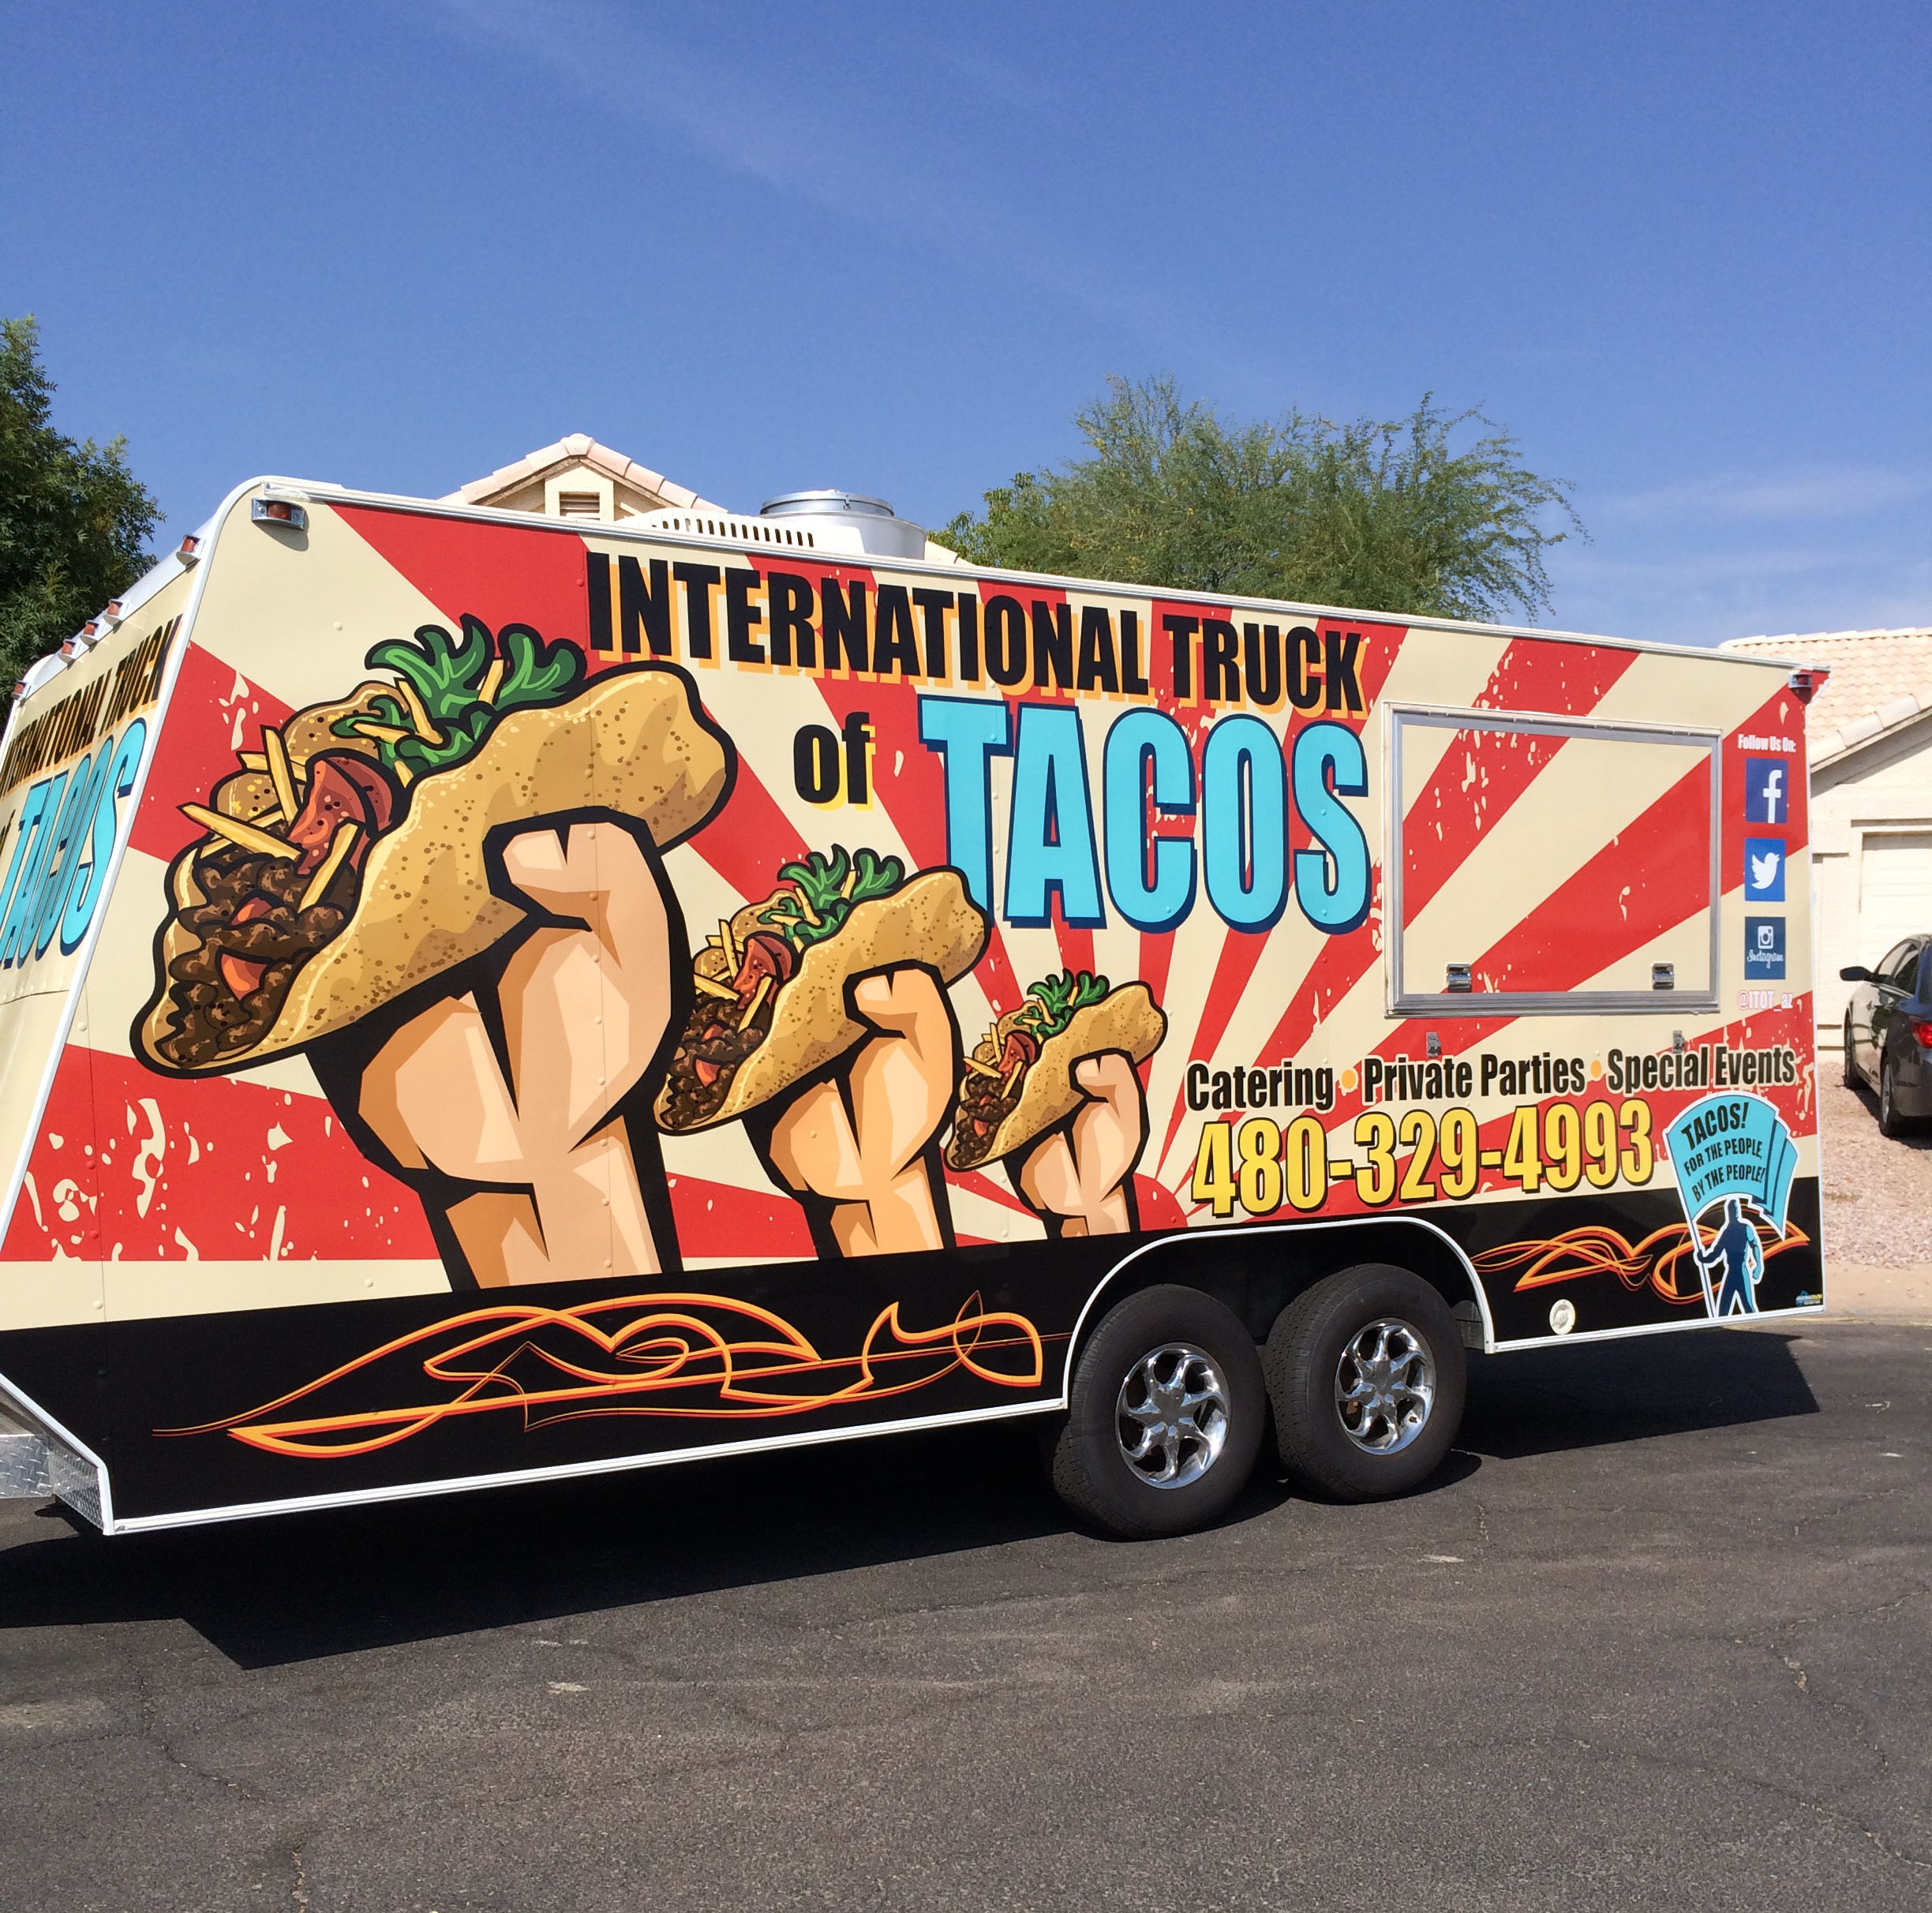 International Truck of Tacos catering private parties special event